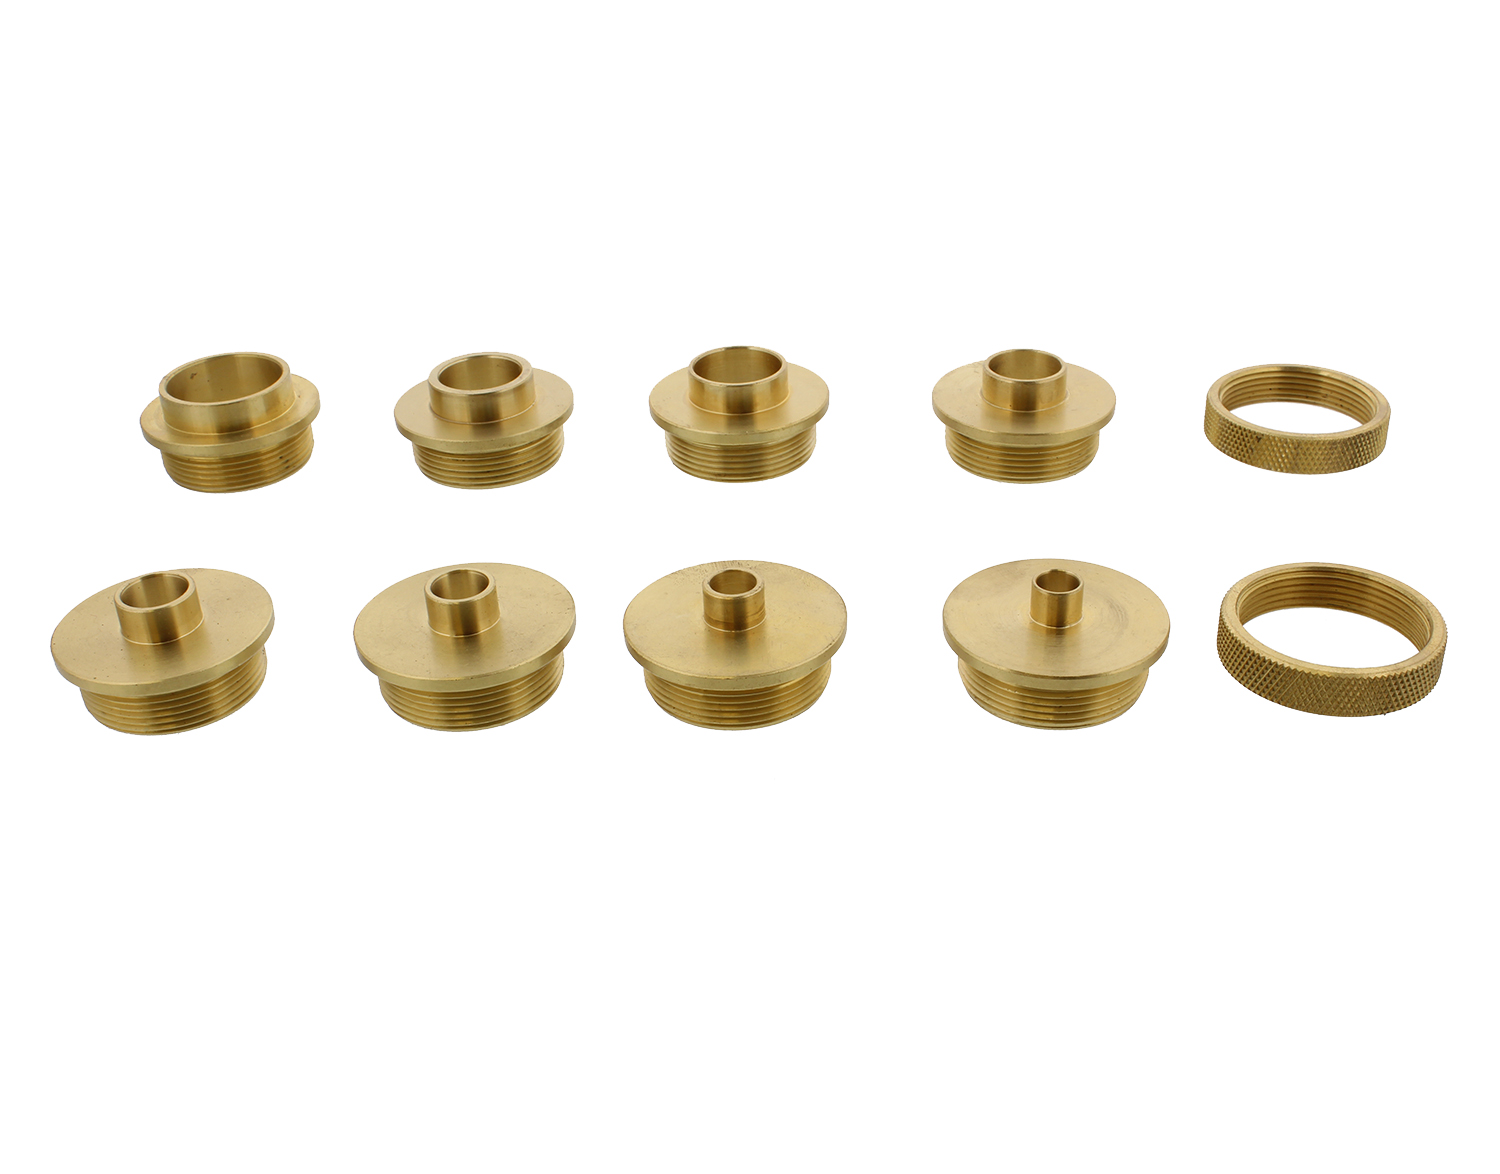 how to use router template guide bushings - dct brass router template guides bushing lock nuts 10